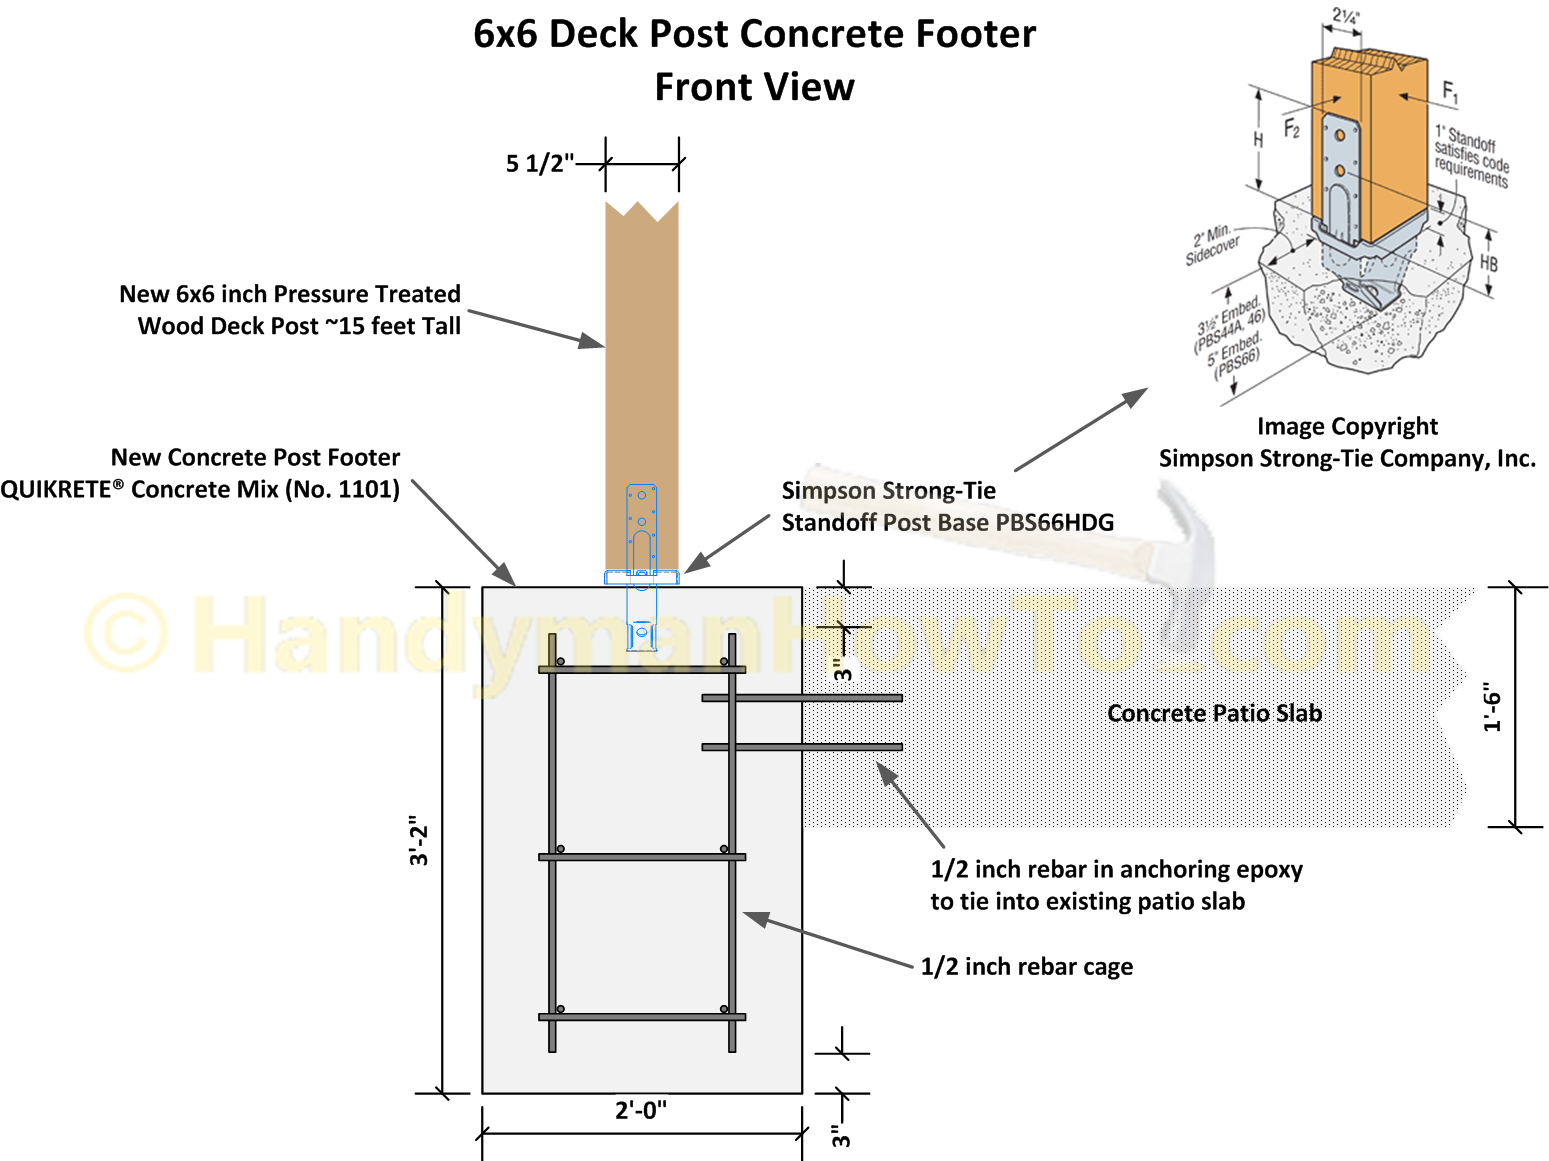 How To Dig A Deck Post Concrete Footer And Build A Rebar